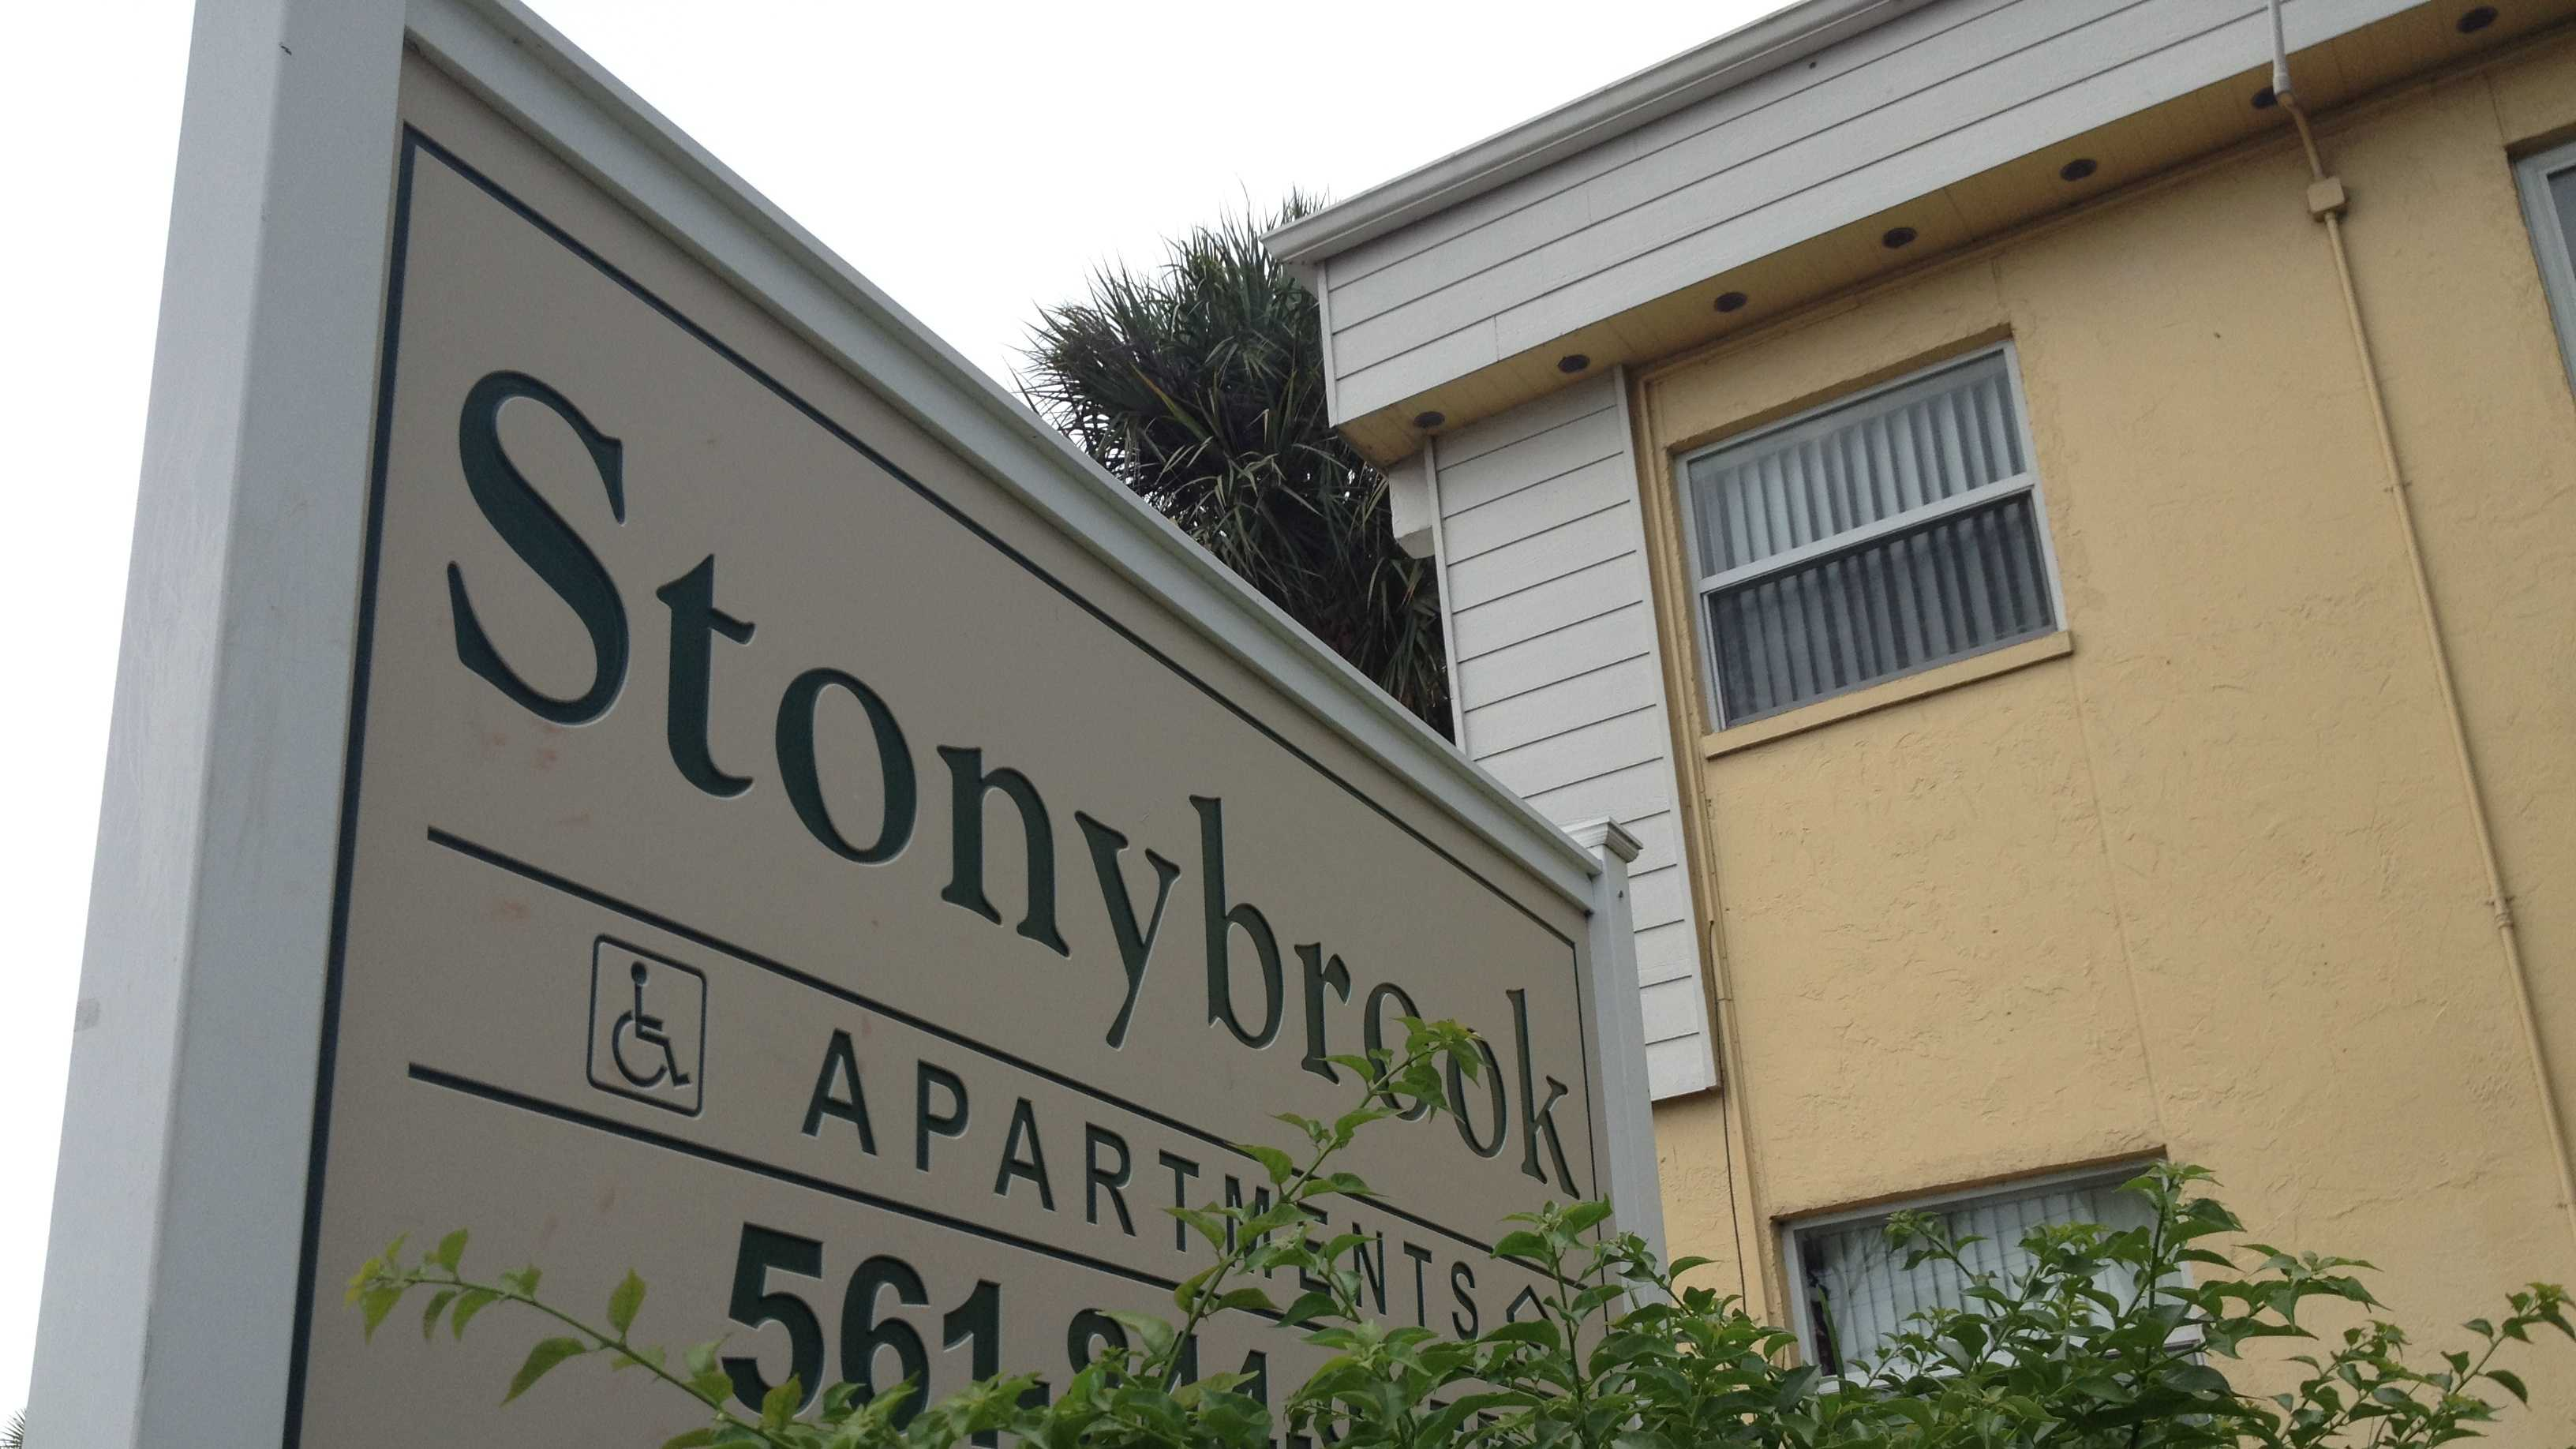 Stonybrook Apartments